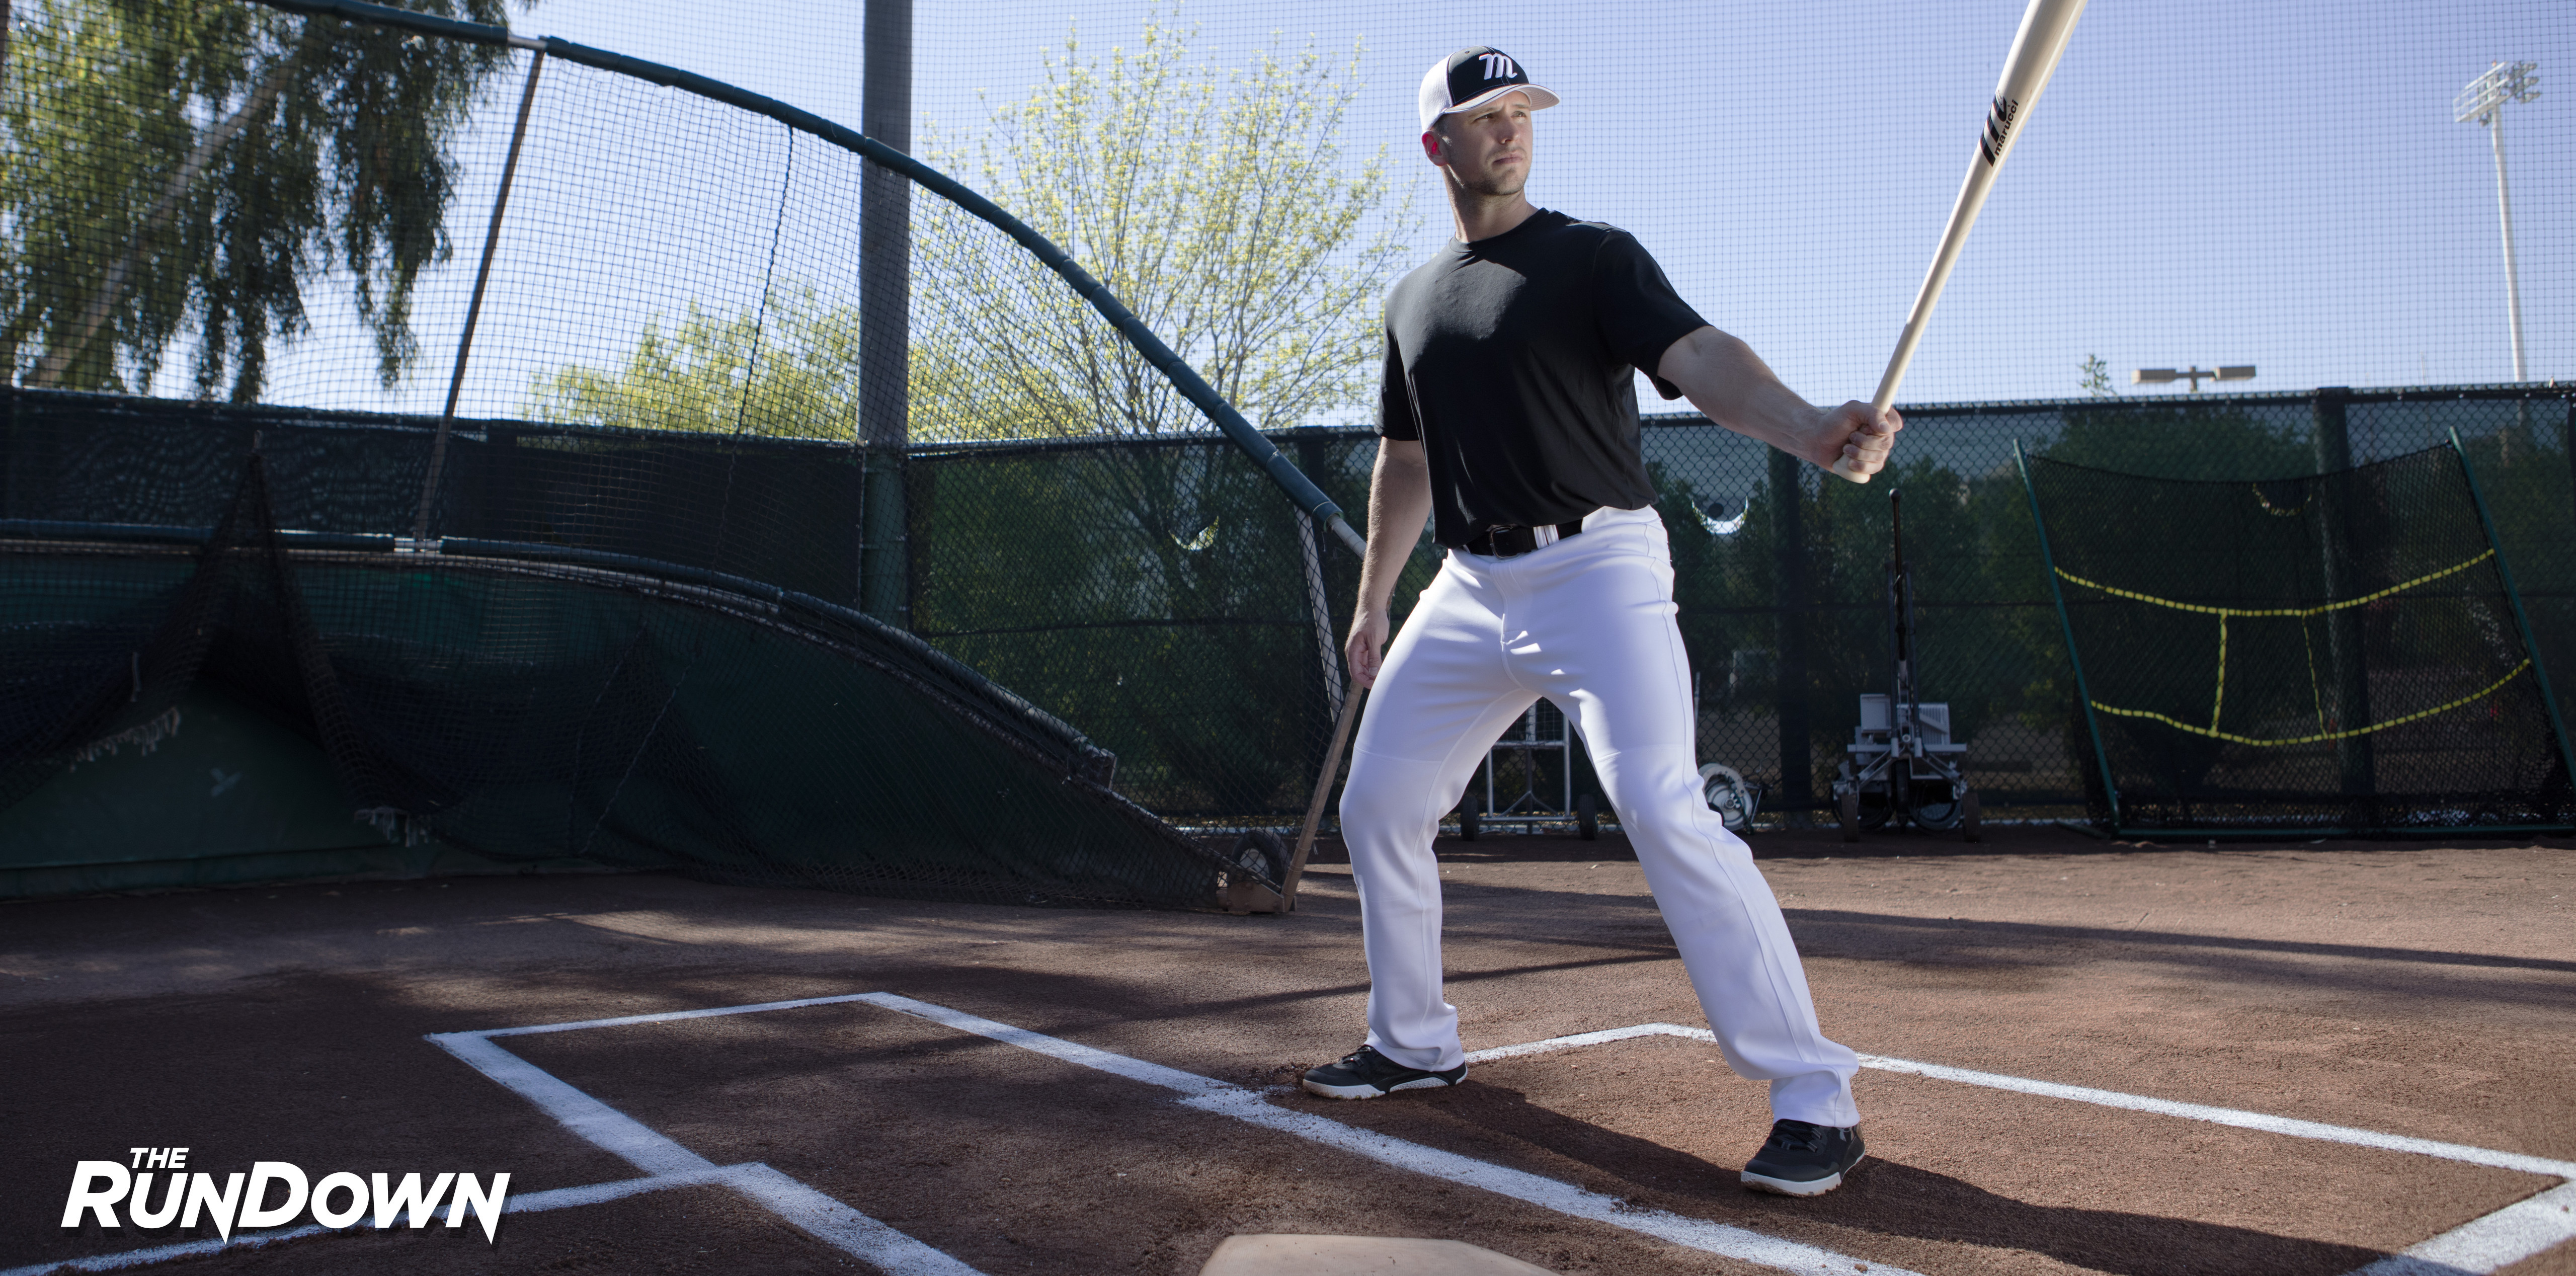 Buster Posey: A Hitter's Edge